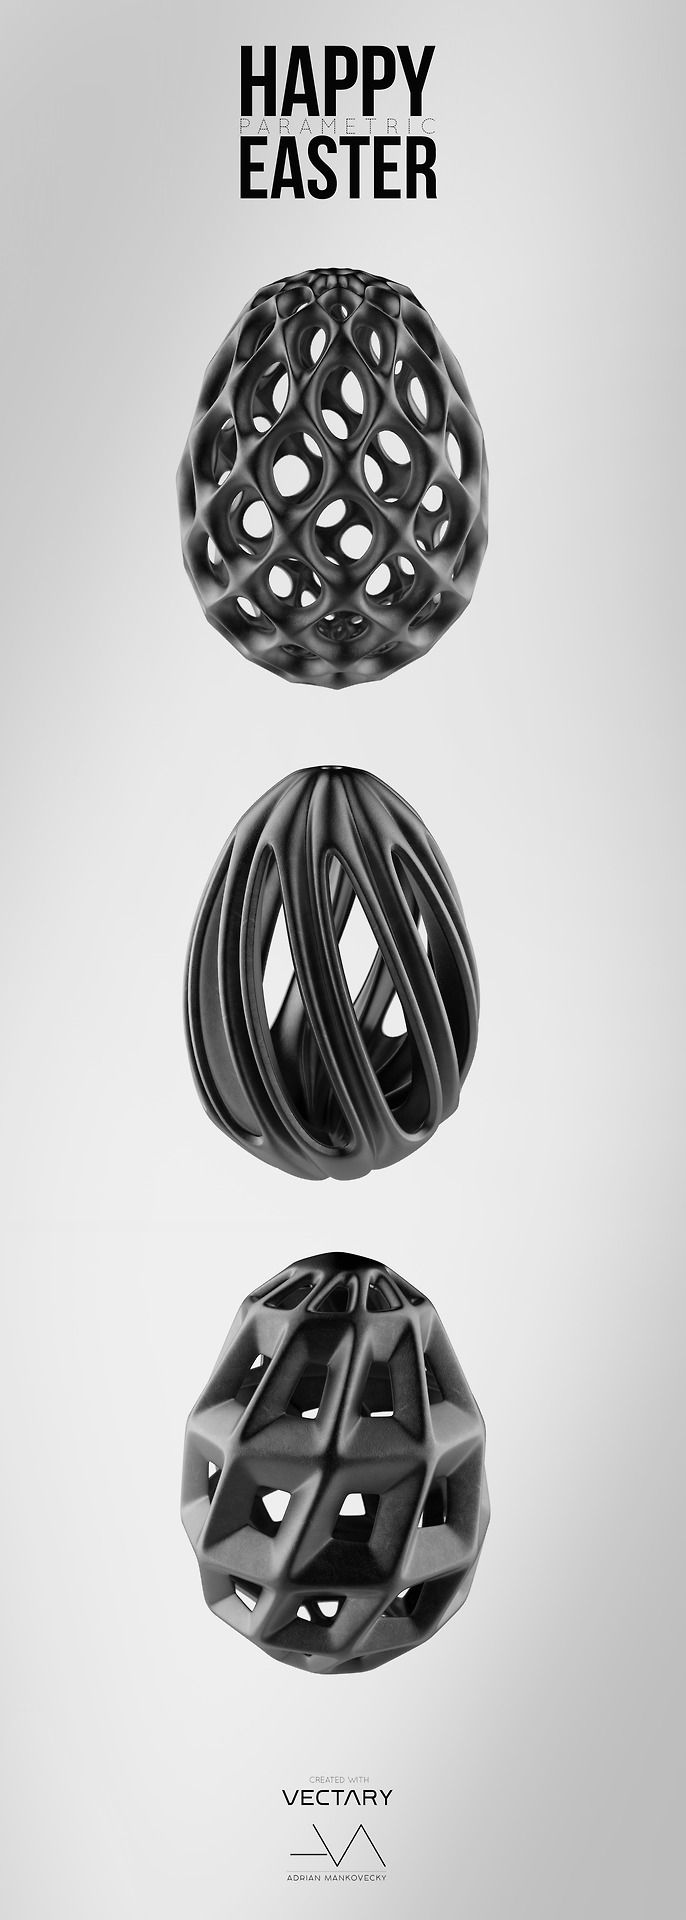 Happy parametric Easter!  Created by Adrian Mankovecky with our online 3D modeling tool VECTARY